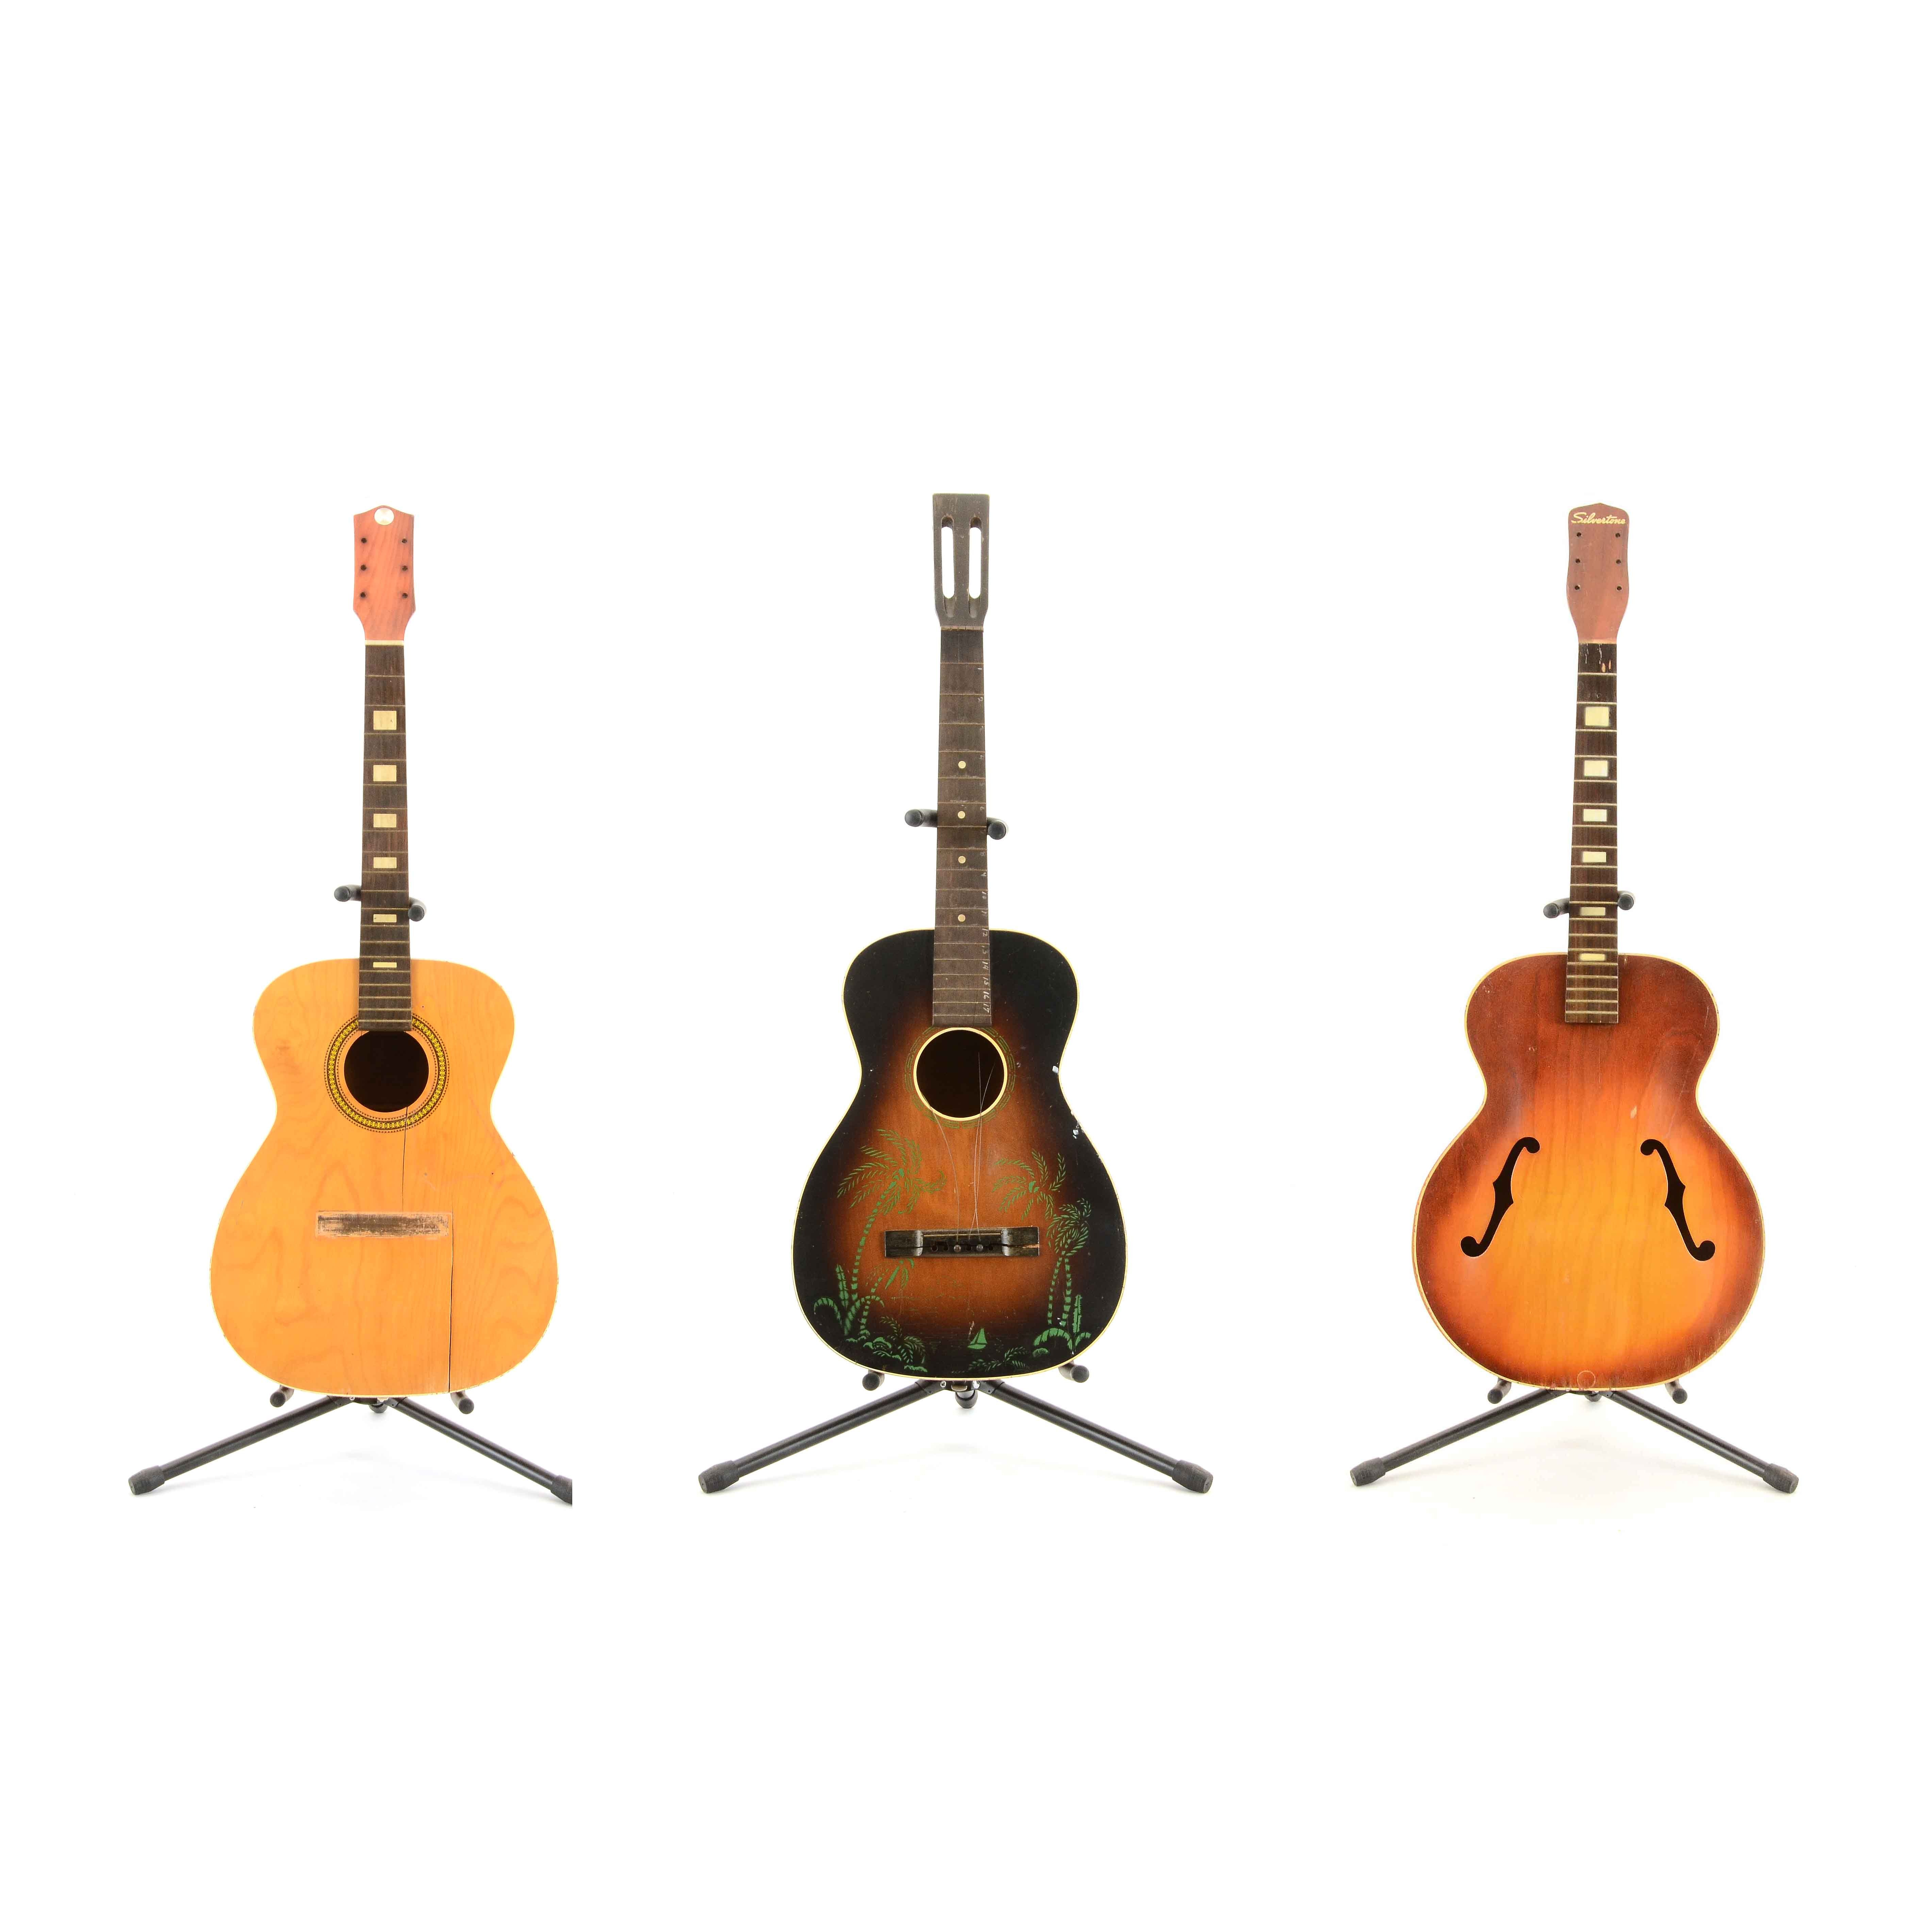 Vintage Acoustic Guitars By Silvertone, Sears Roebuck, and Kay